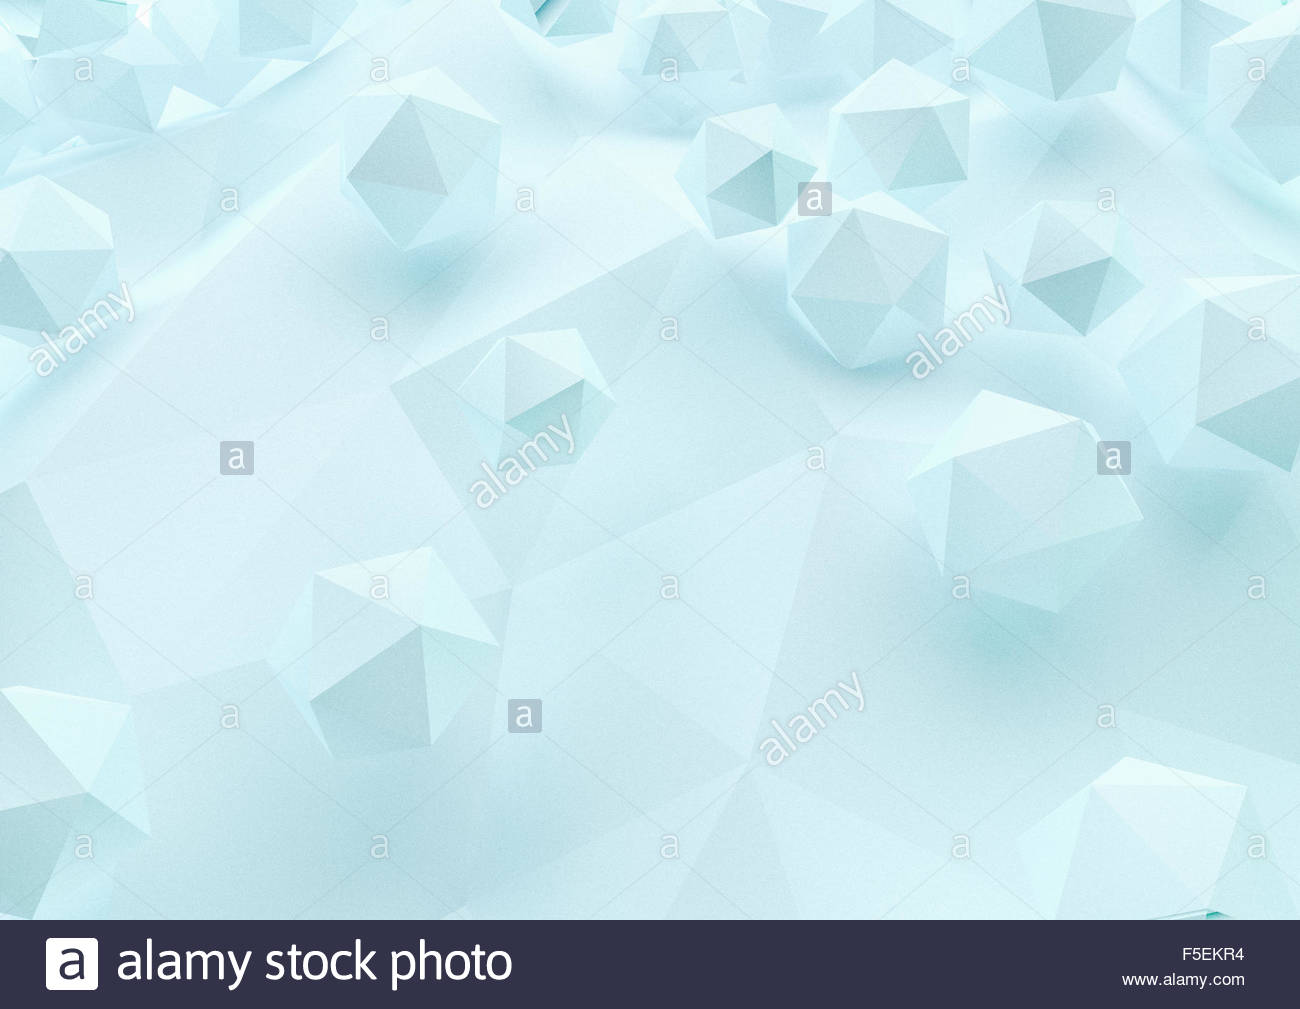 Abstract three dimensional geometric shapes on low poly surface - Stock Image